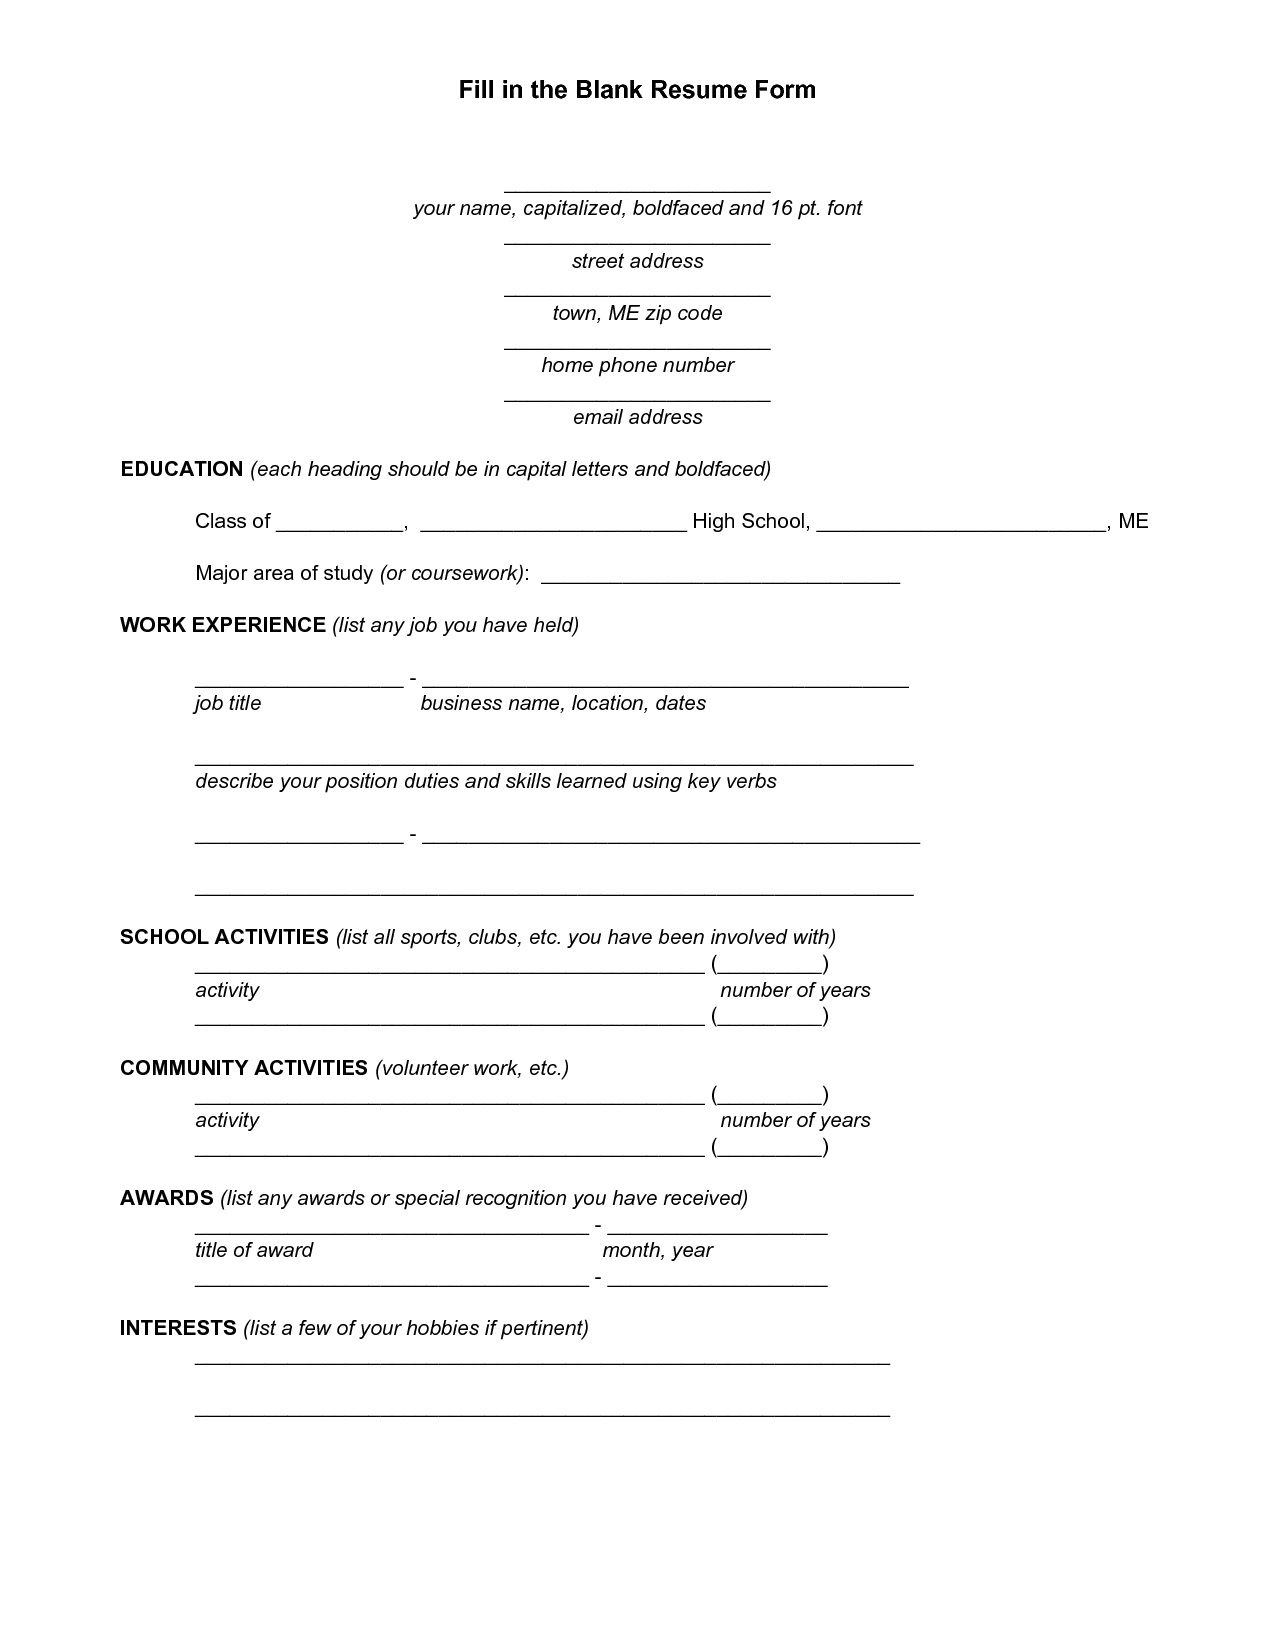 blank job resume form we provide as reference to make correct and good quality resume also will give ideas and strategies